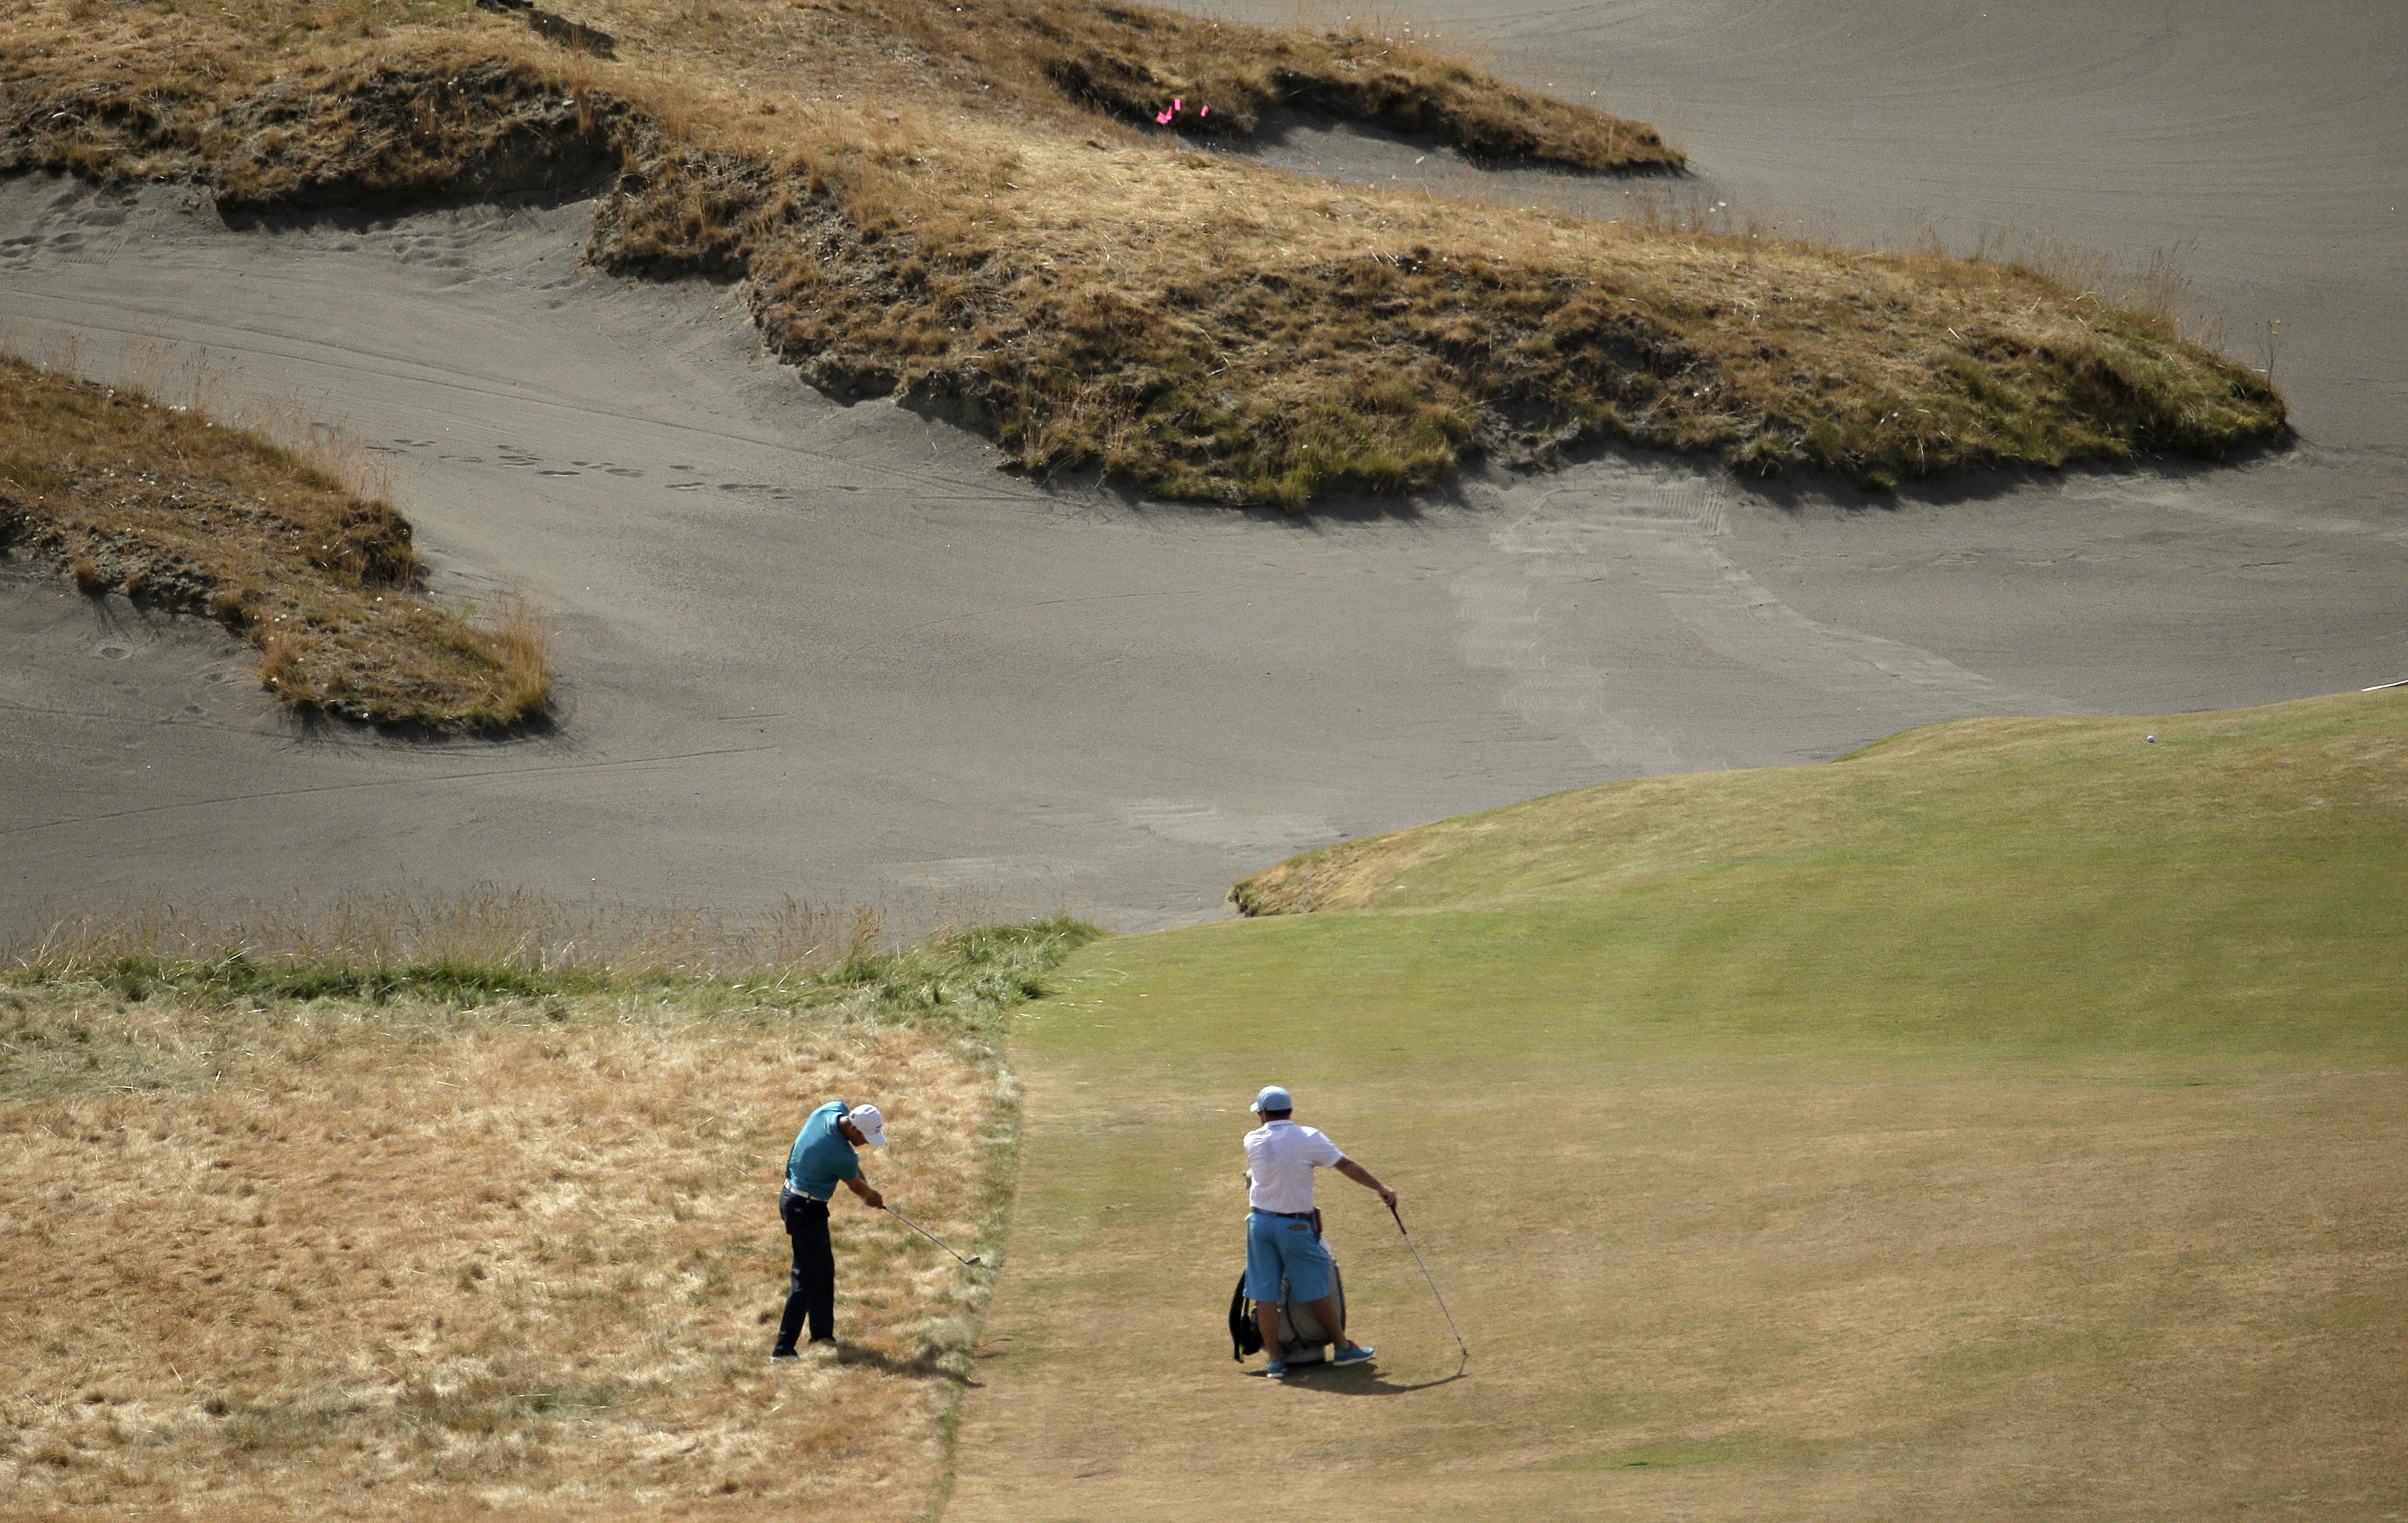 Martin Kaymer, left, of Germany, hits from rough on the fifth hole during a practice round for the U.S. Open golf tournament at Chambers Bay on Tuesday, June 16, 2015 in University Place, Wash. (AP Photo/Charlie